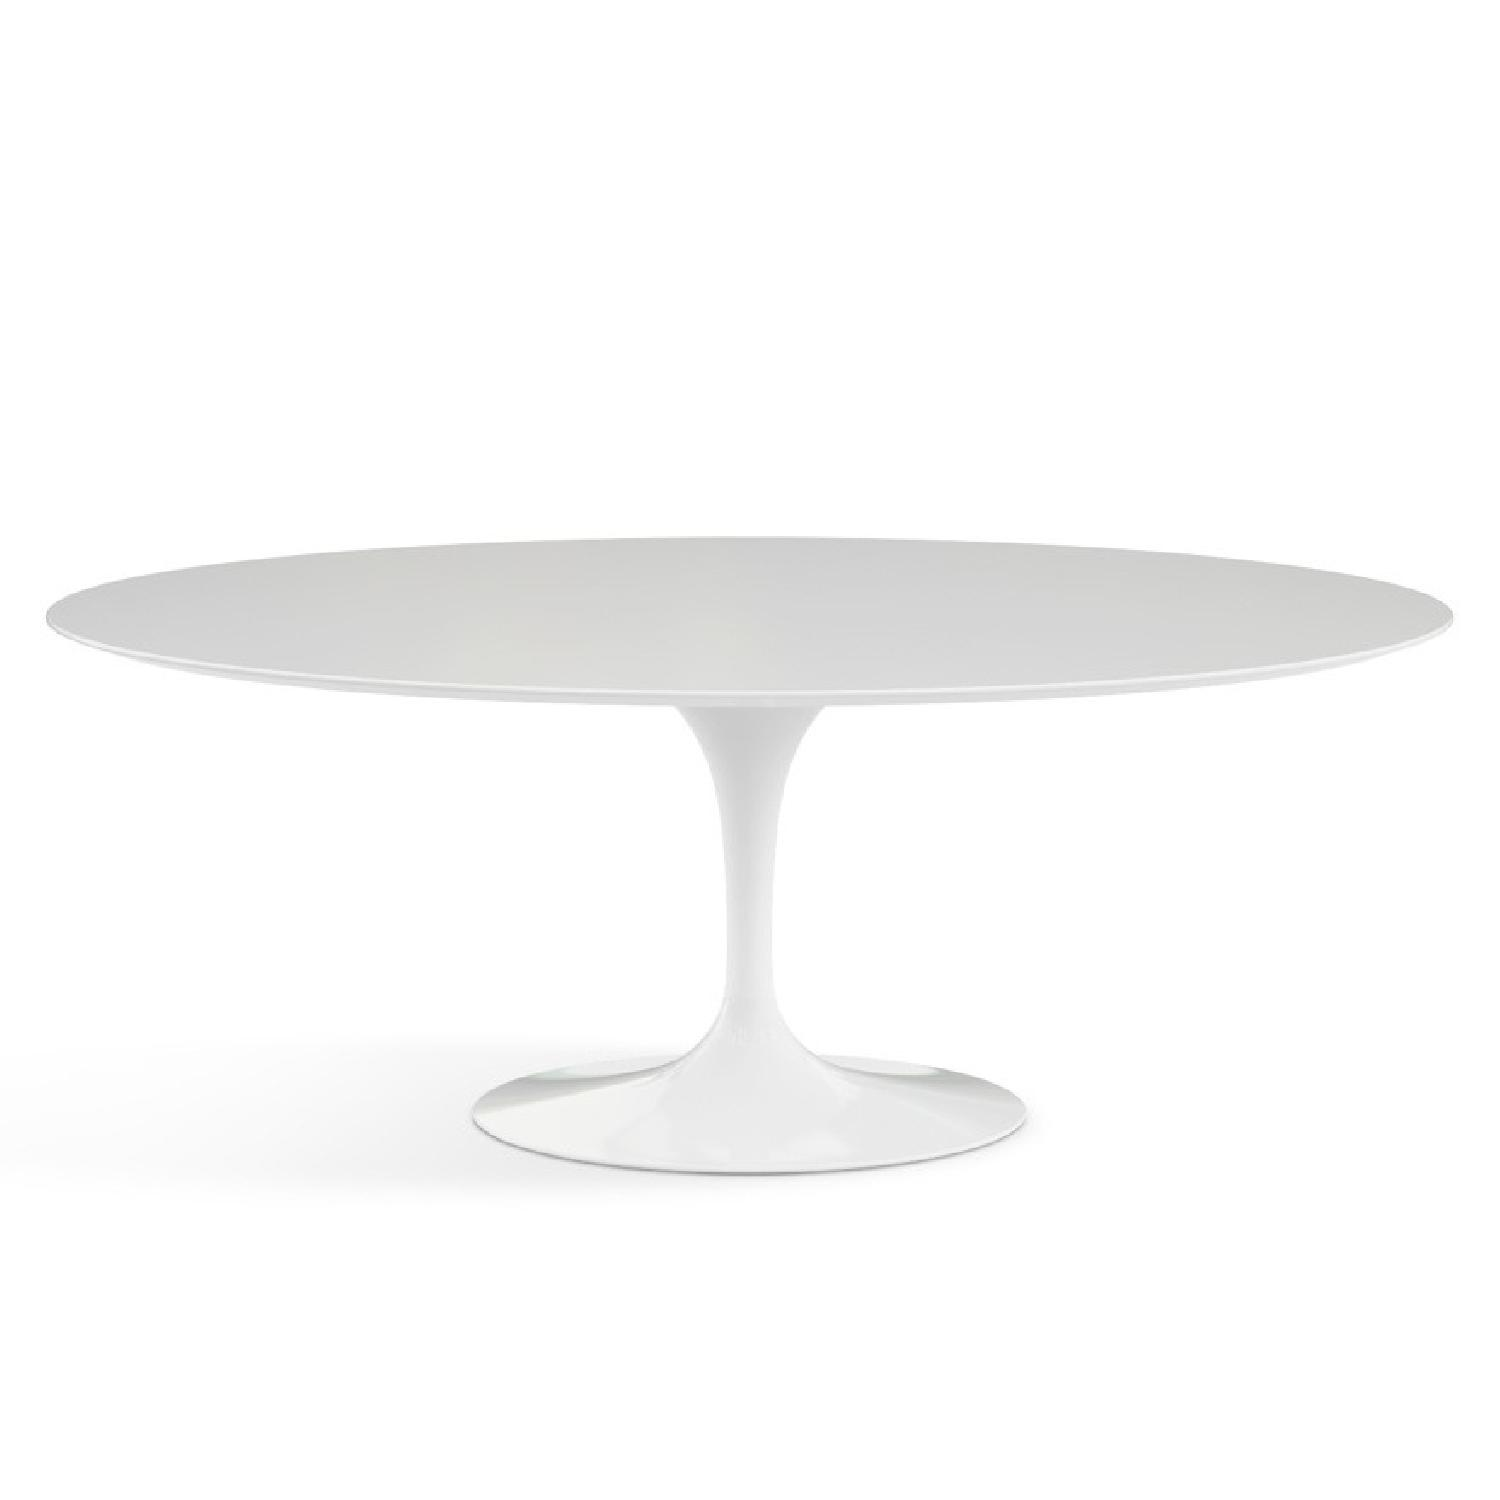 Eero Saarinen Oval Dining Table